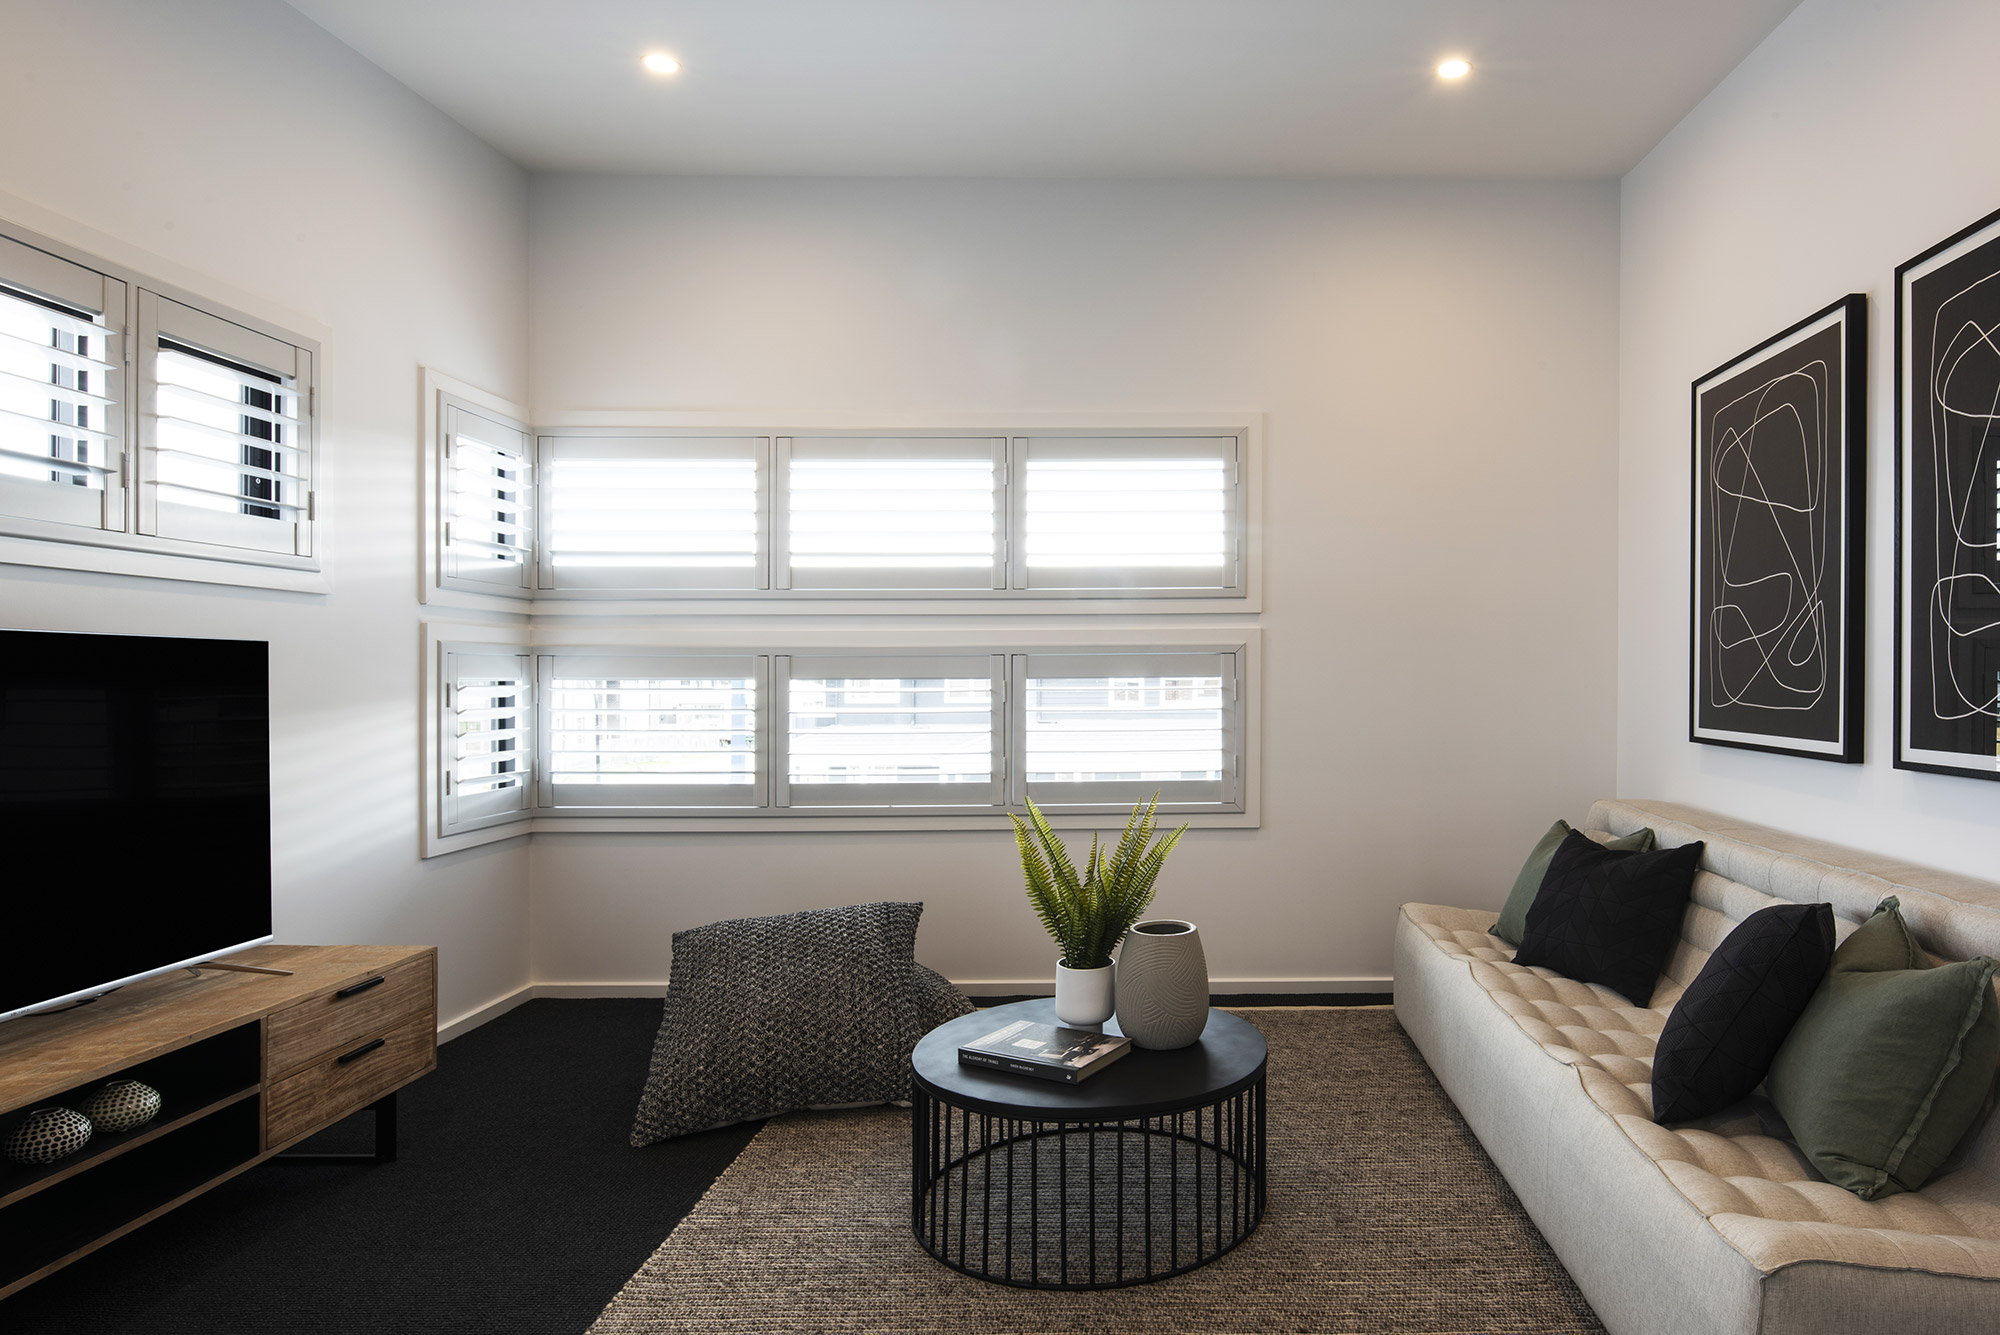 Cayman rumpus room with shutter blinds